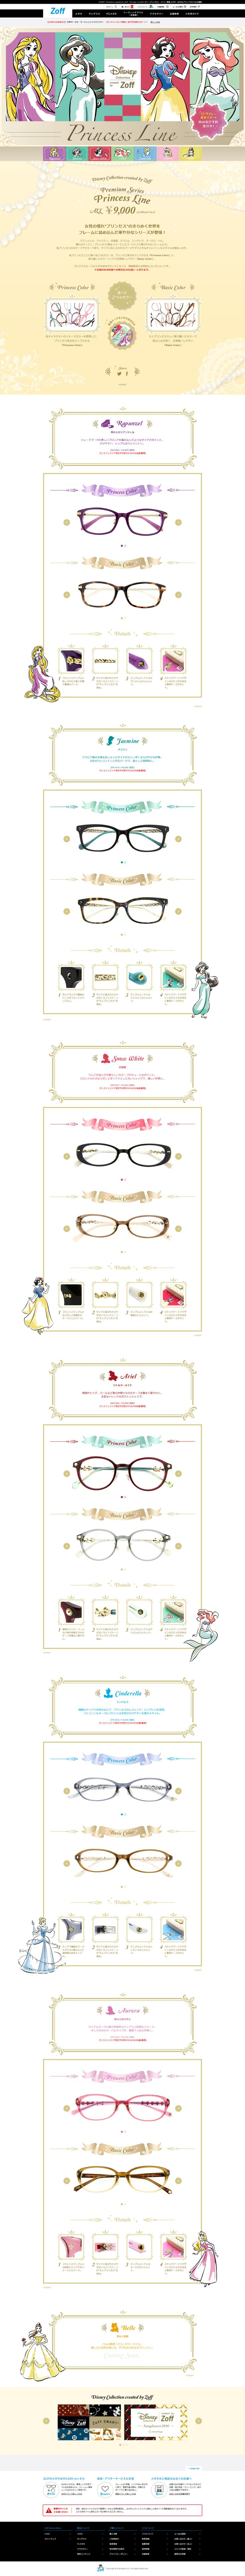 DISNEY Collection created by Zoff - Princess Line(ディズニープリンセス) - 2016  http://www.zoff.co.jp/sp/disney-collection/premium/princess2016/